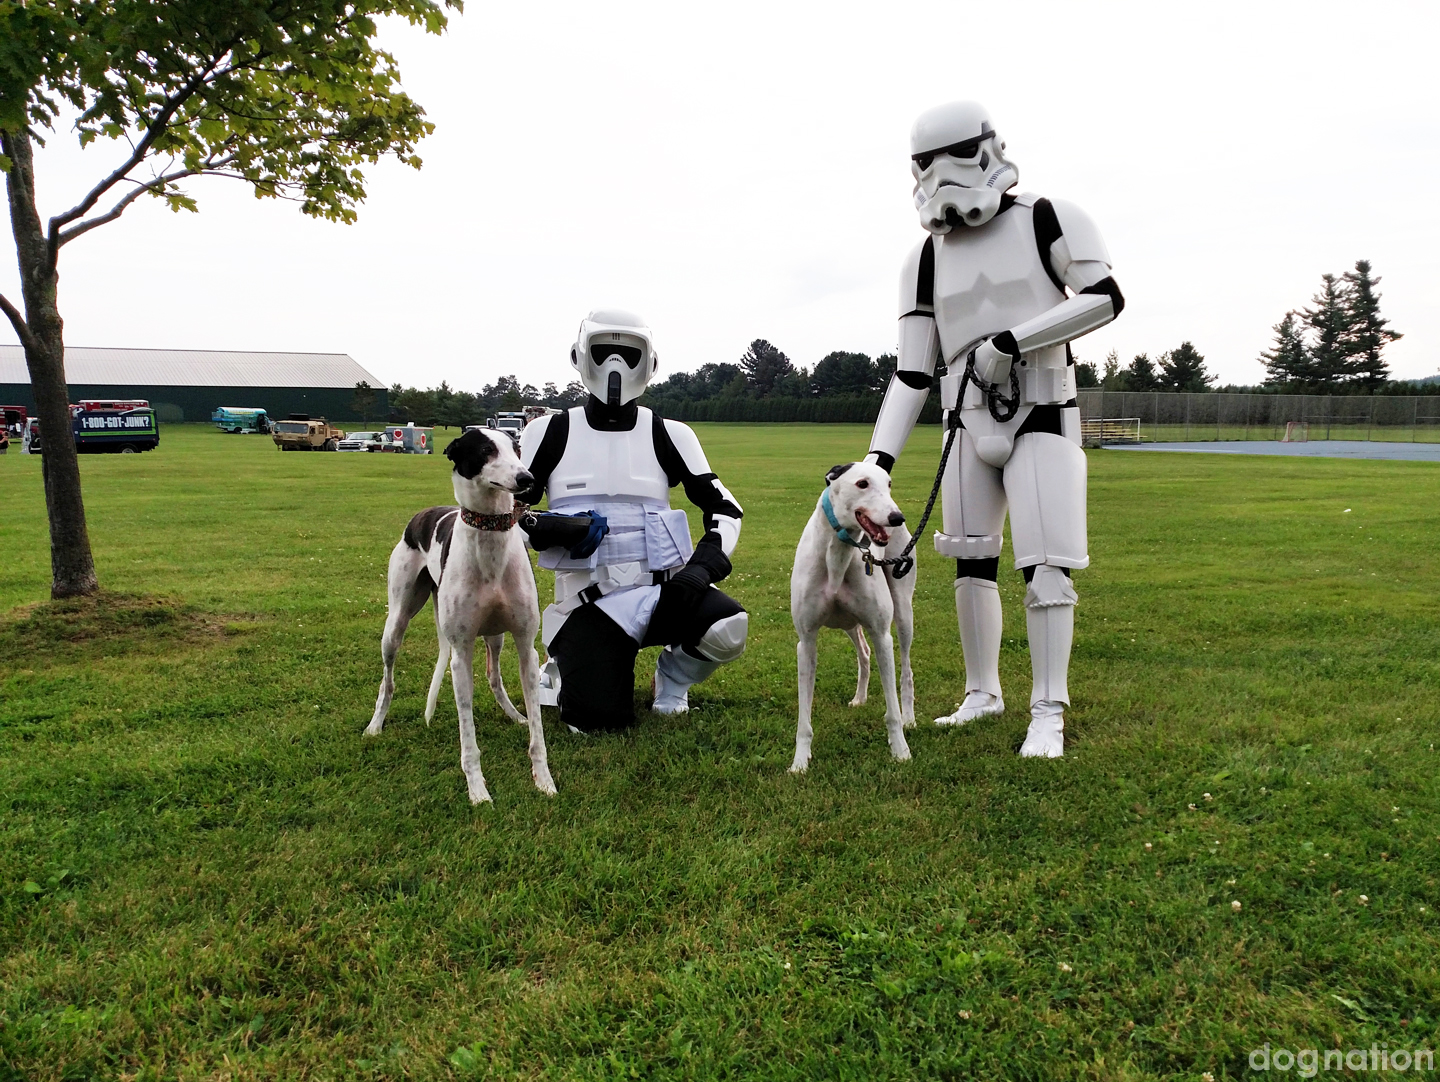 wordless wednesday 341, star wars, storm troopers, greyhounds